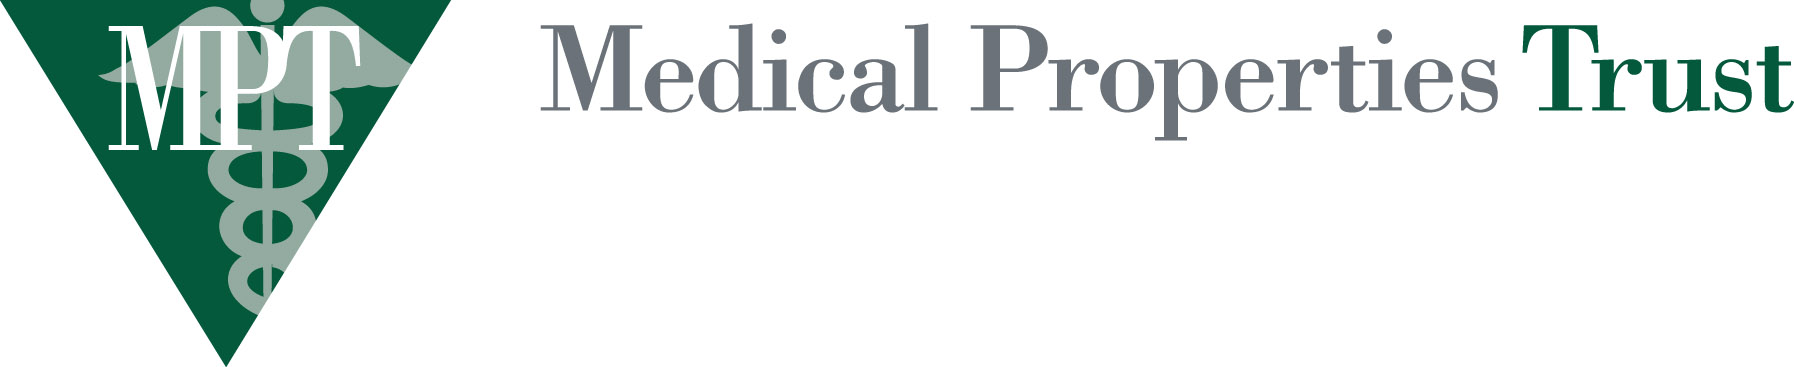 Medical Properties Trust, Inc. Logo